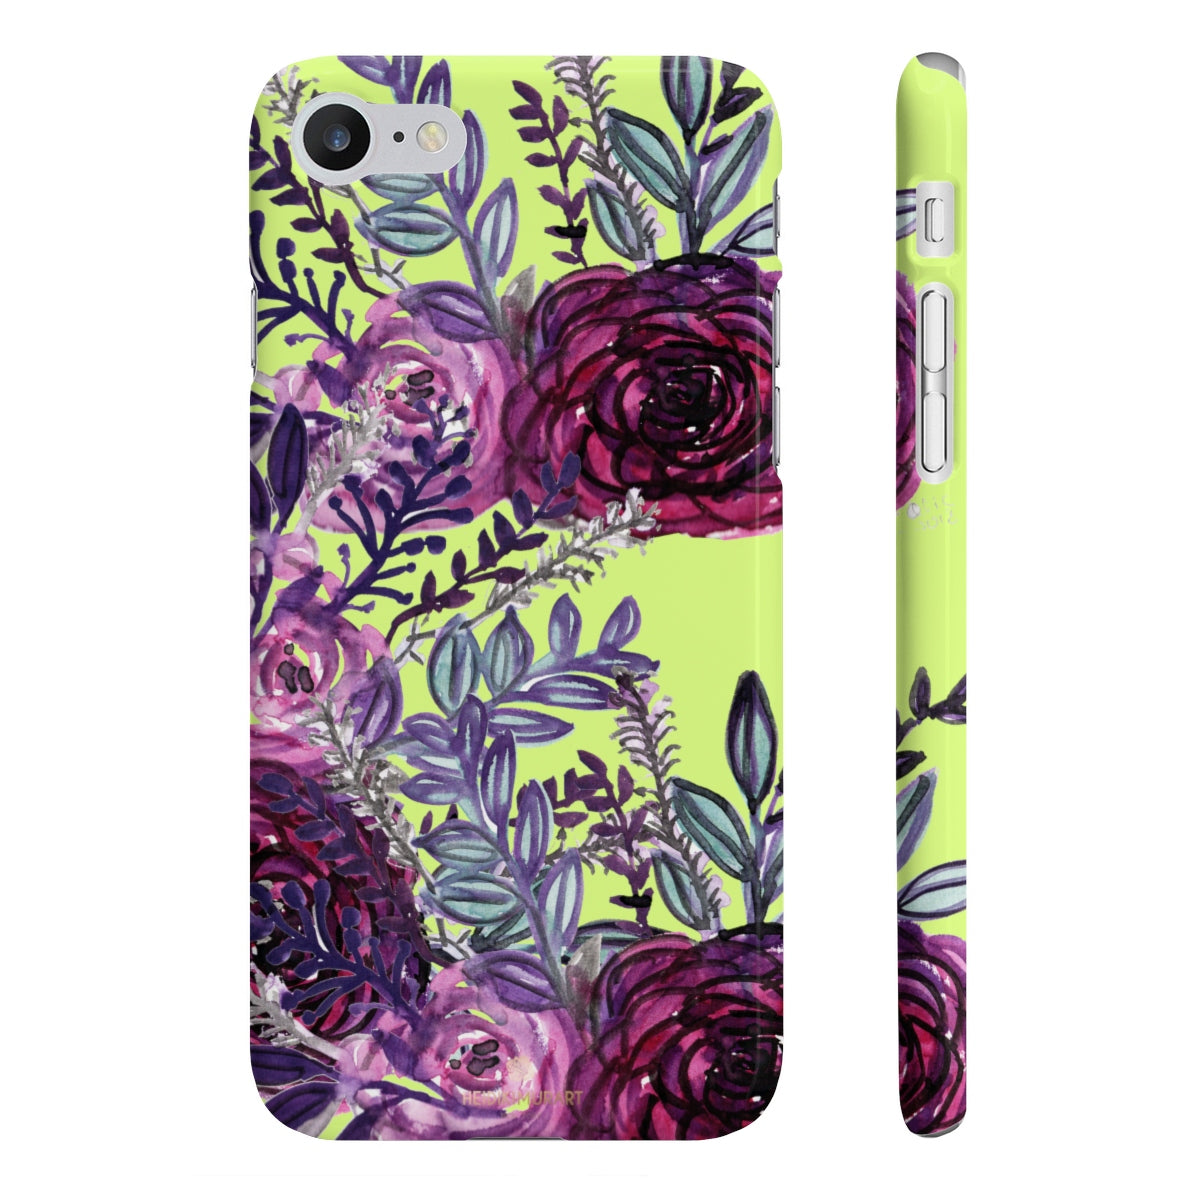 Yellow Slim iPhone/ Samsung Galaxy Floral Purple Rose iPhone or Samsung Case, Made in UK-Phone Case-iPhone 7, iPhone 8 Slim-Glossy-Heidi Kimura Art LLC